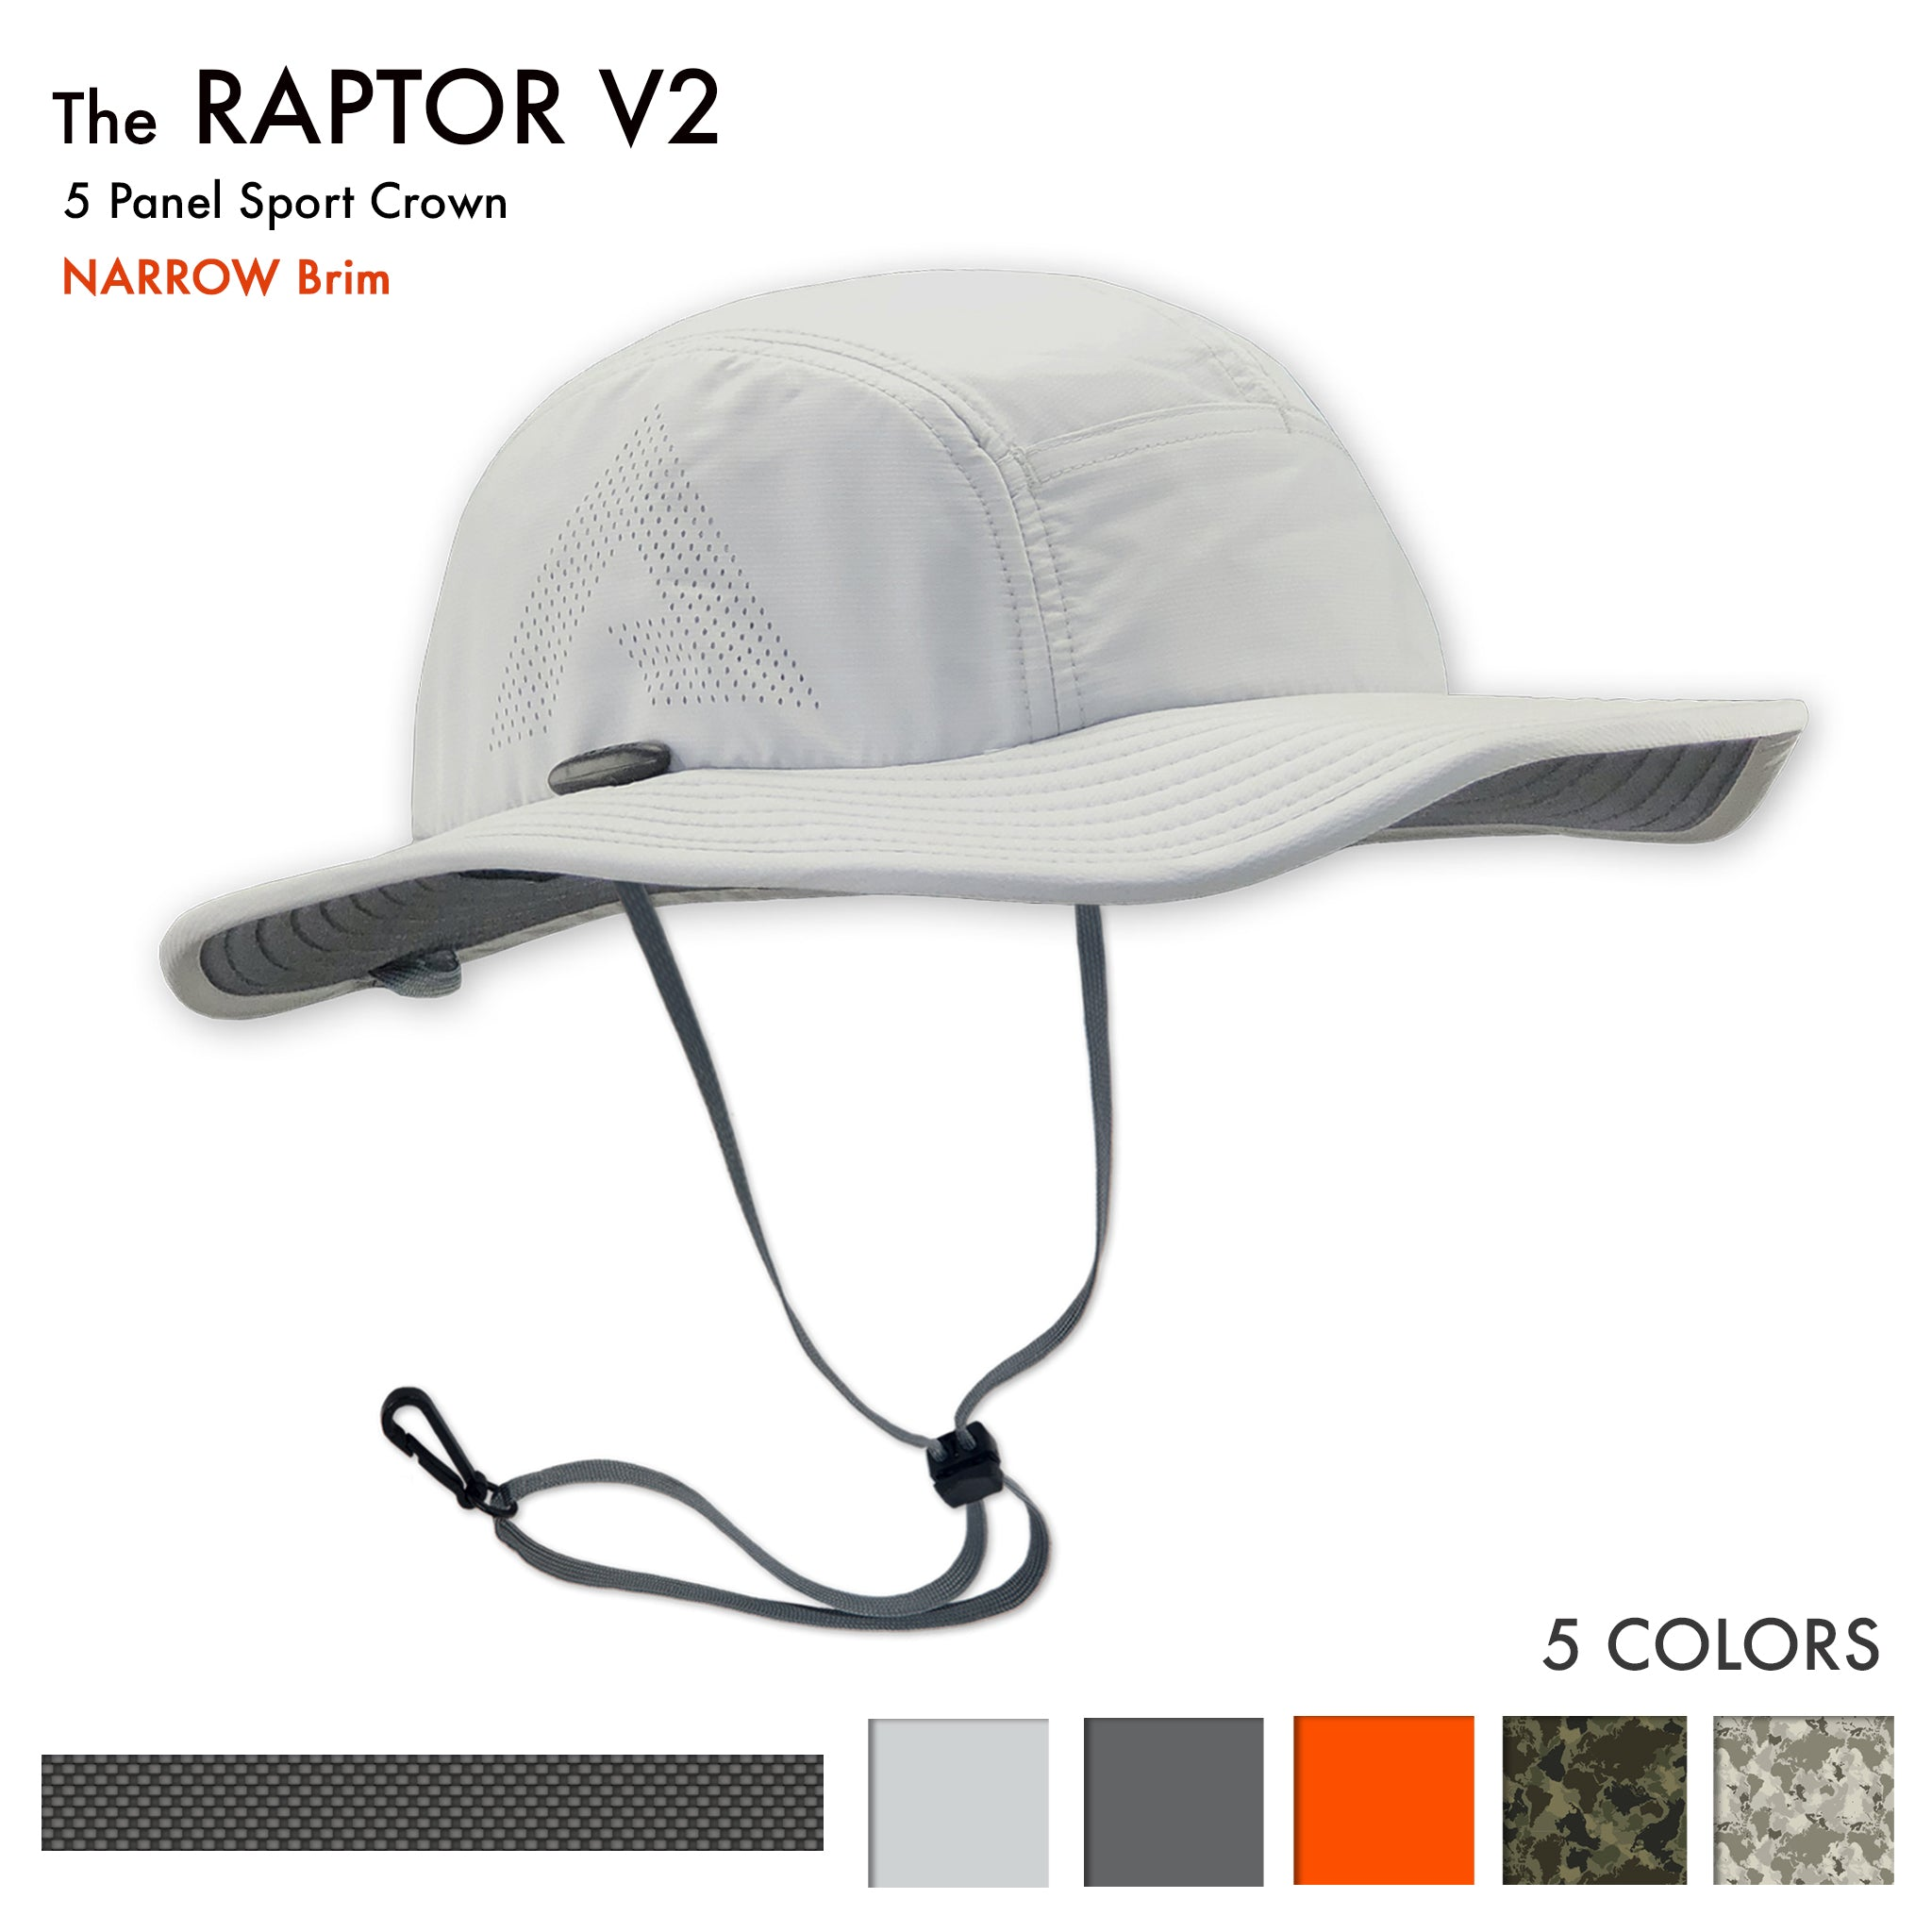 Raptor V2 Sun Hat -The Raptor Sun hat is the best Sun Hat for Jogging, trail running, fly fishing, archery, outrigger paddling, tennis and stand up paddling, sup. It is a great sun hat for canoeing, beach volleyball, hiking and golfing. It is a good sun hat for shooting, kayaking and climbing.